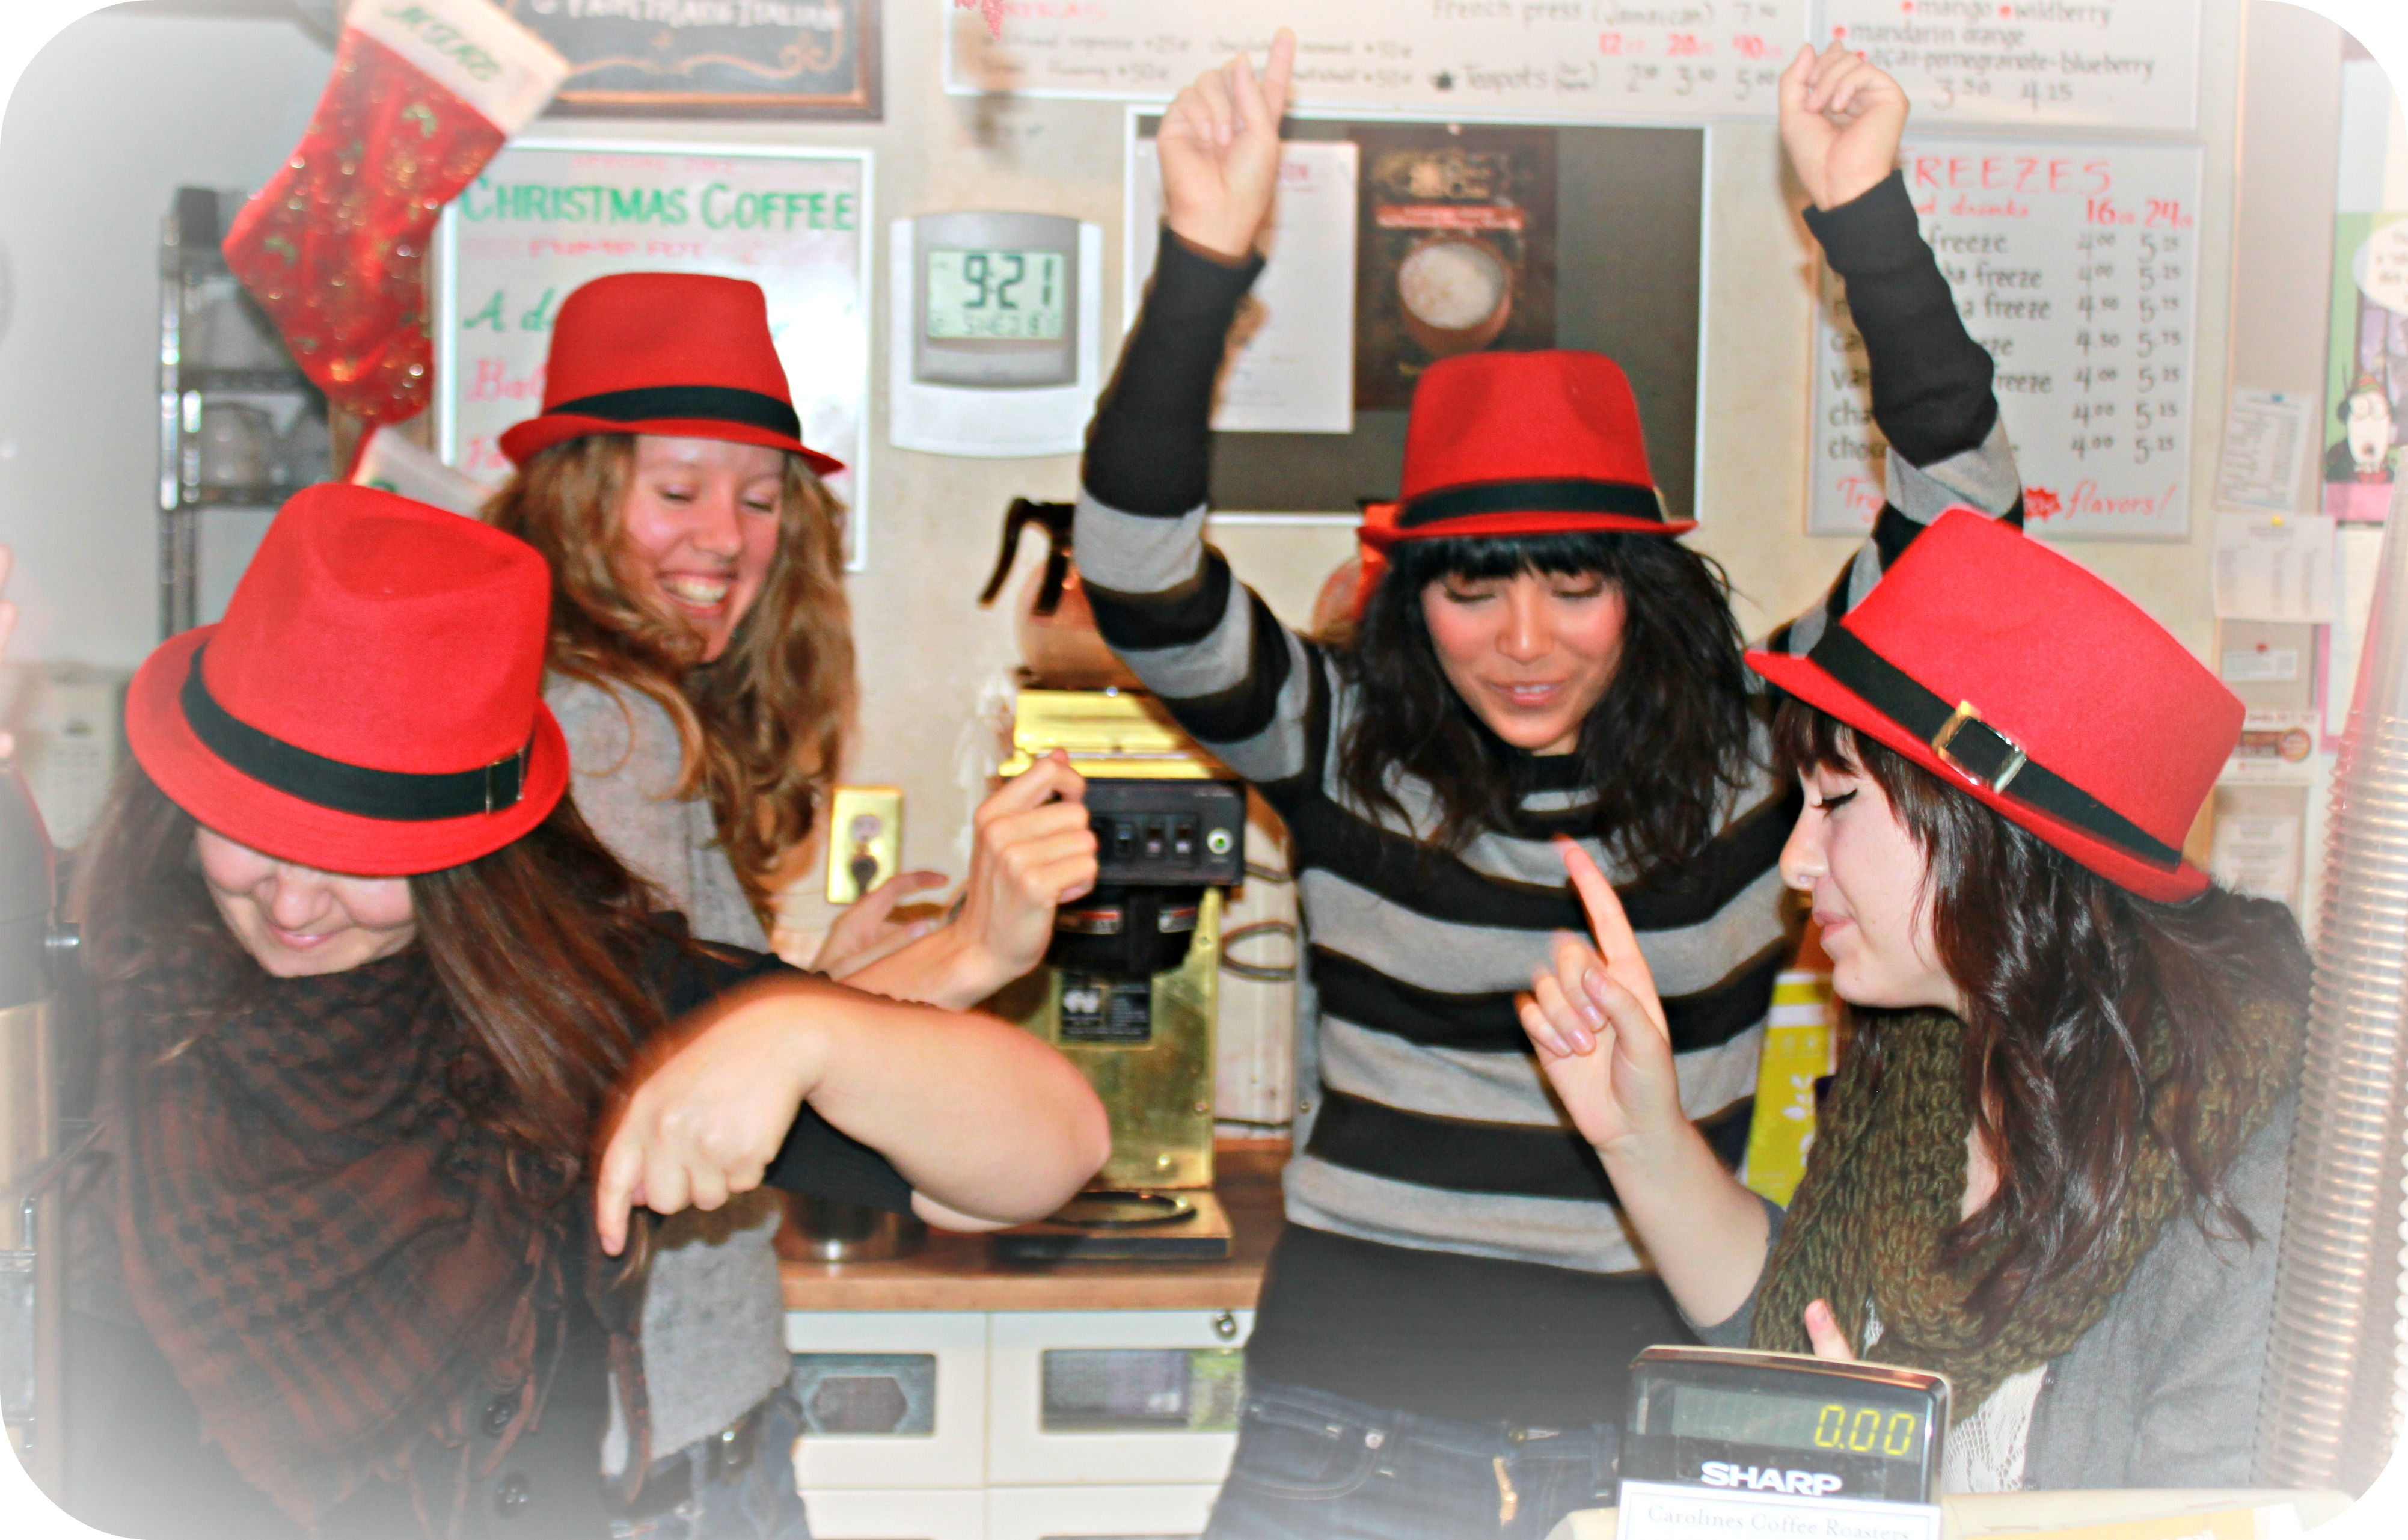 It was red fedora day around here on Wednesday--thanks to a customer who gifted the hats!